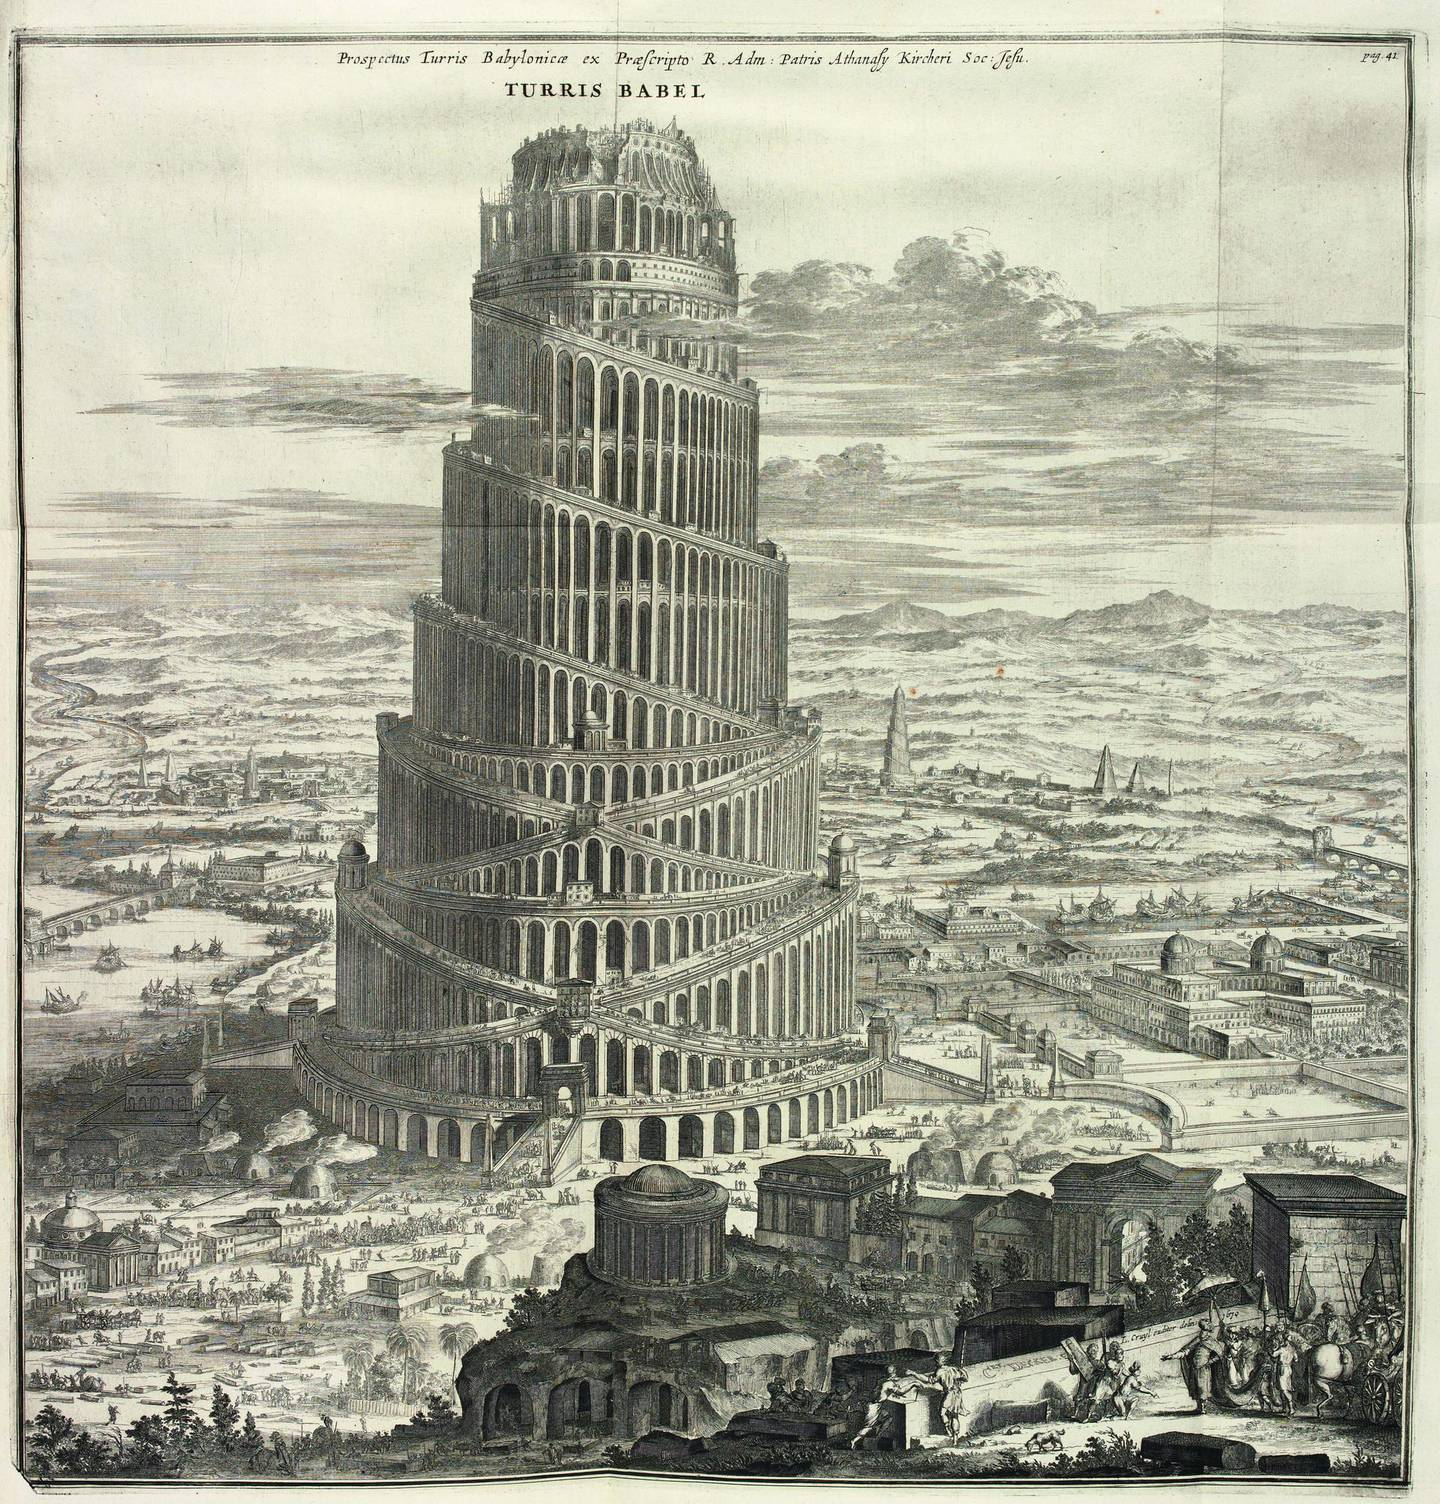 An image from the book Turris Babel (Tower of Babel, 1679), written by German Jesuit scholar and polymath Athanasius Kircher, with illustrations engraved by C. Decker, a German craftsman. The book is a historical study of the biblical story of the Tower of Babel. Kircher's main interest was understanding the history of language.  Image credit: Bodleian Libraries, University of Oxford